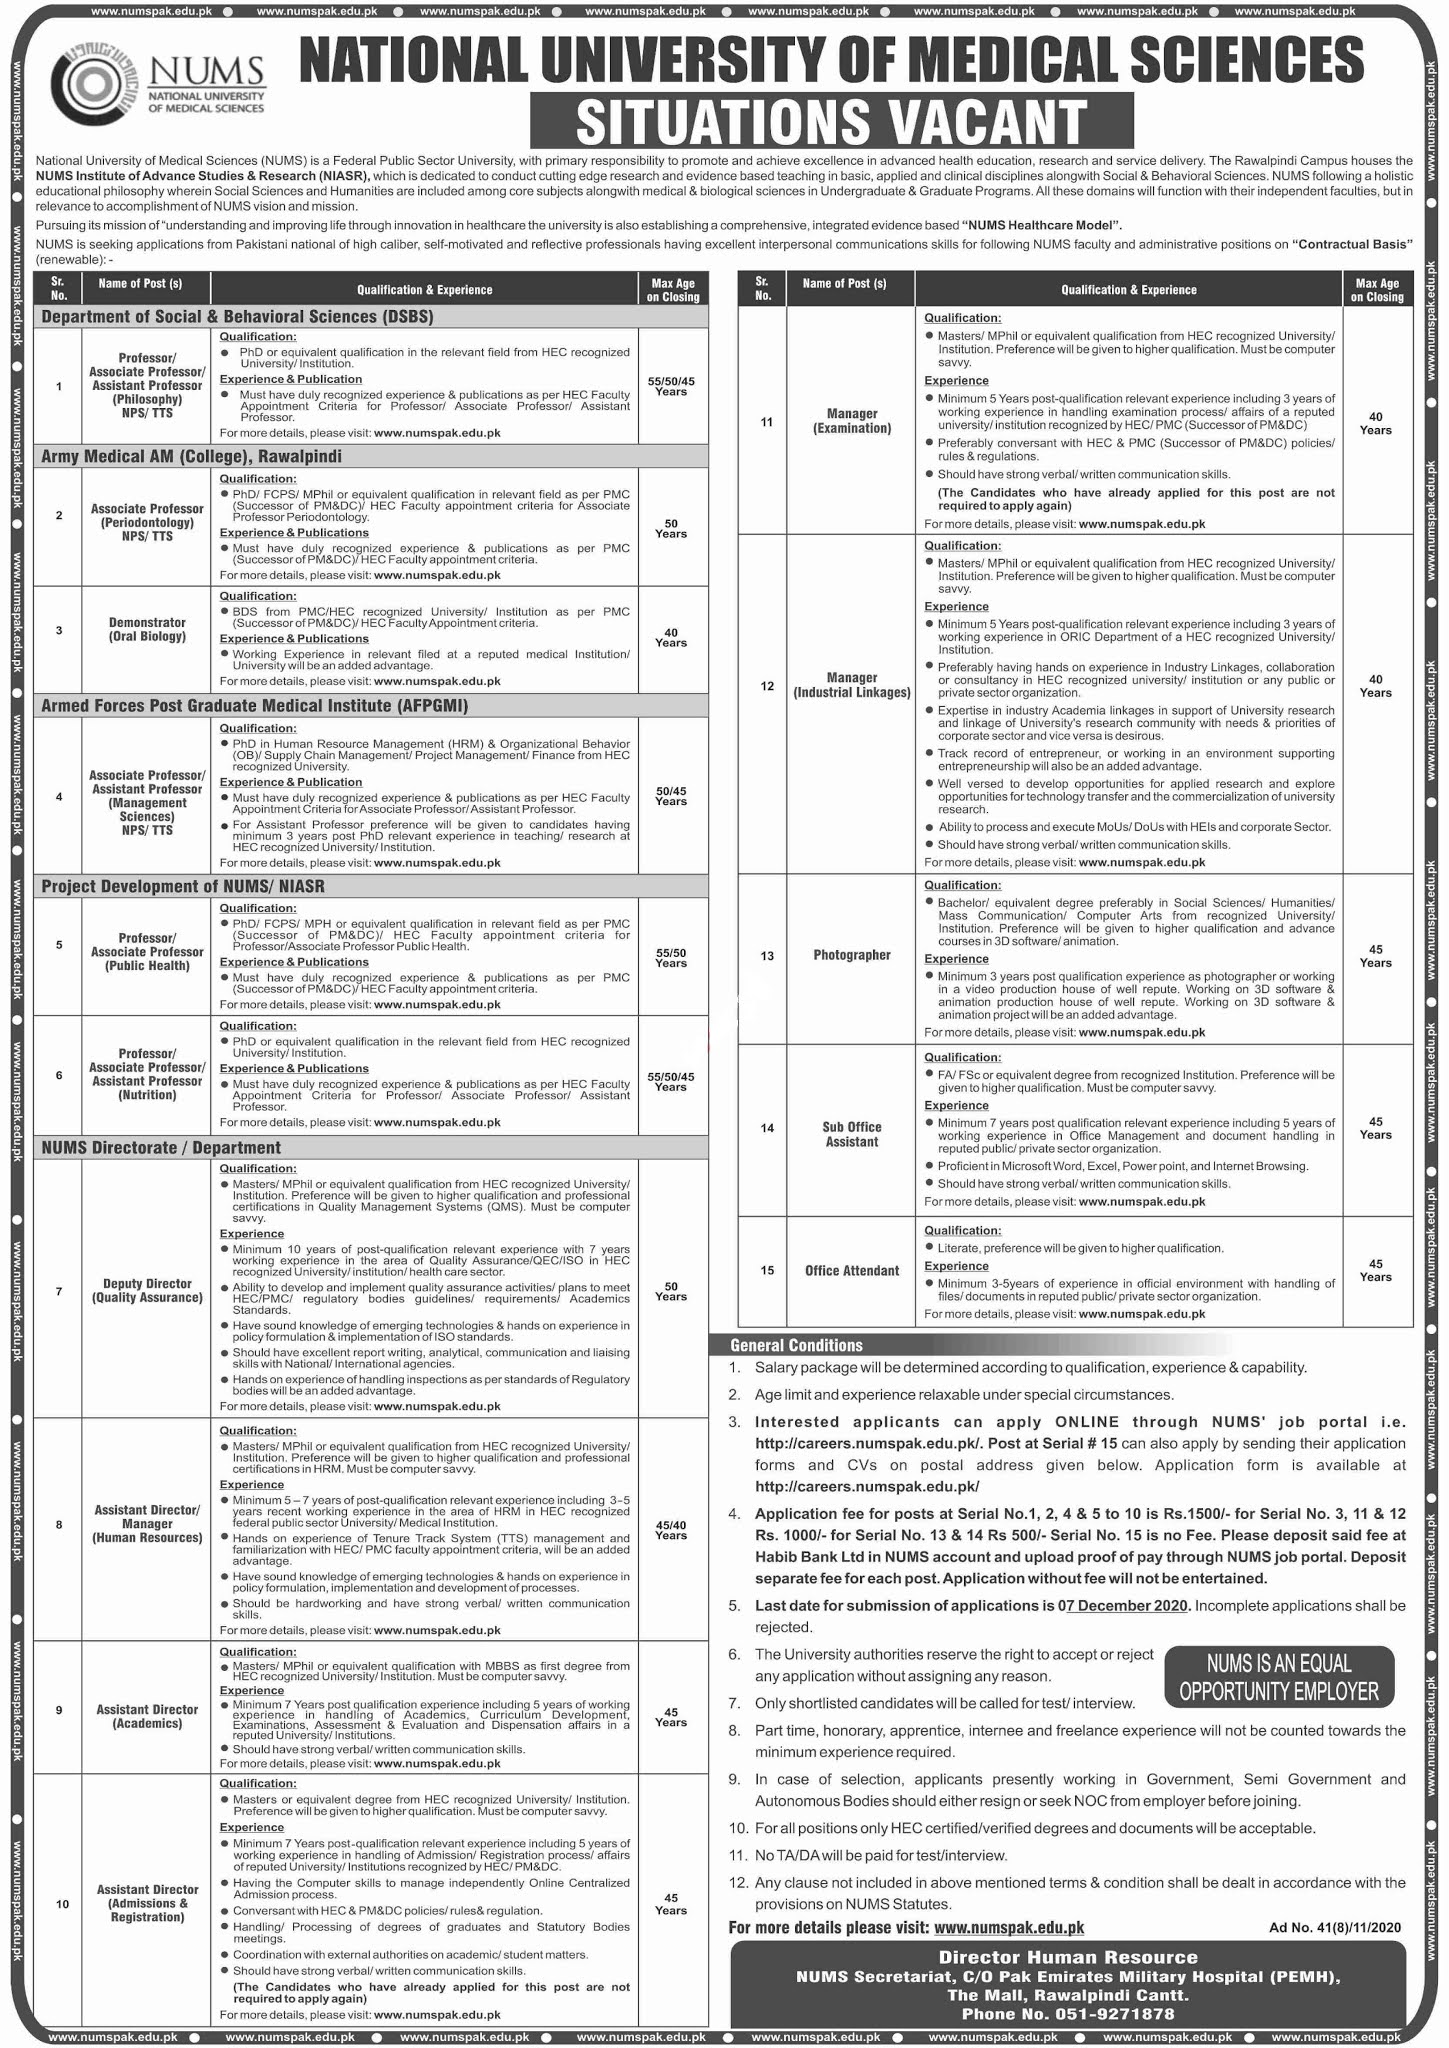 Latest National University of Medical Sciences NUMS Management Jobs 2020 for Sub Office Assistant, Office Attendant, Professors and more